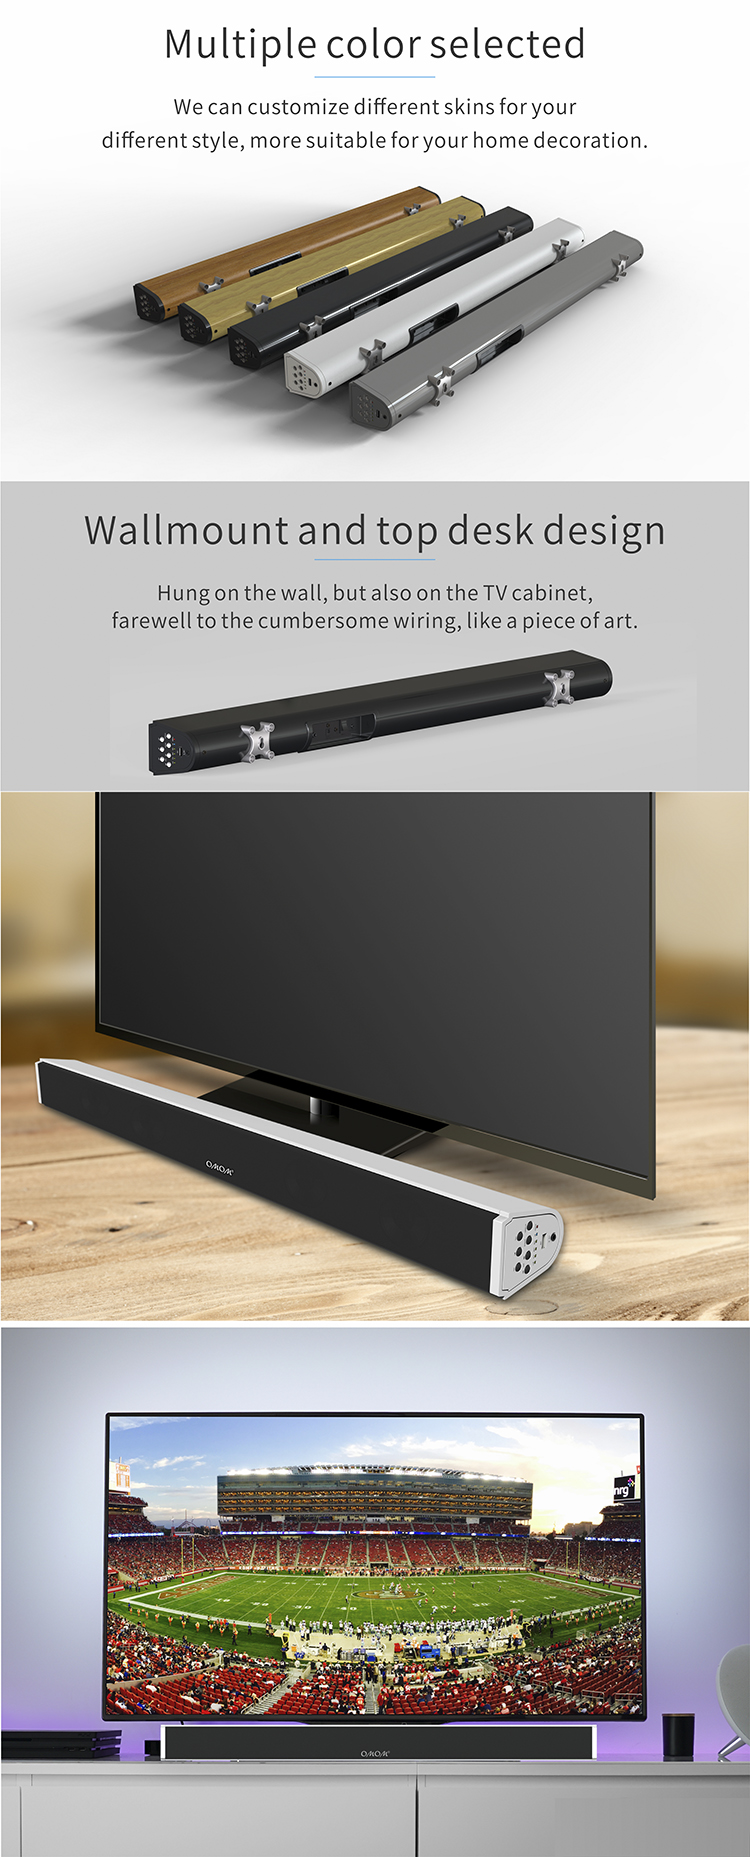 OM-SB200BT Fashionable Subwoofer Sound Bar Speaker/Soundbar Speaker for TV